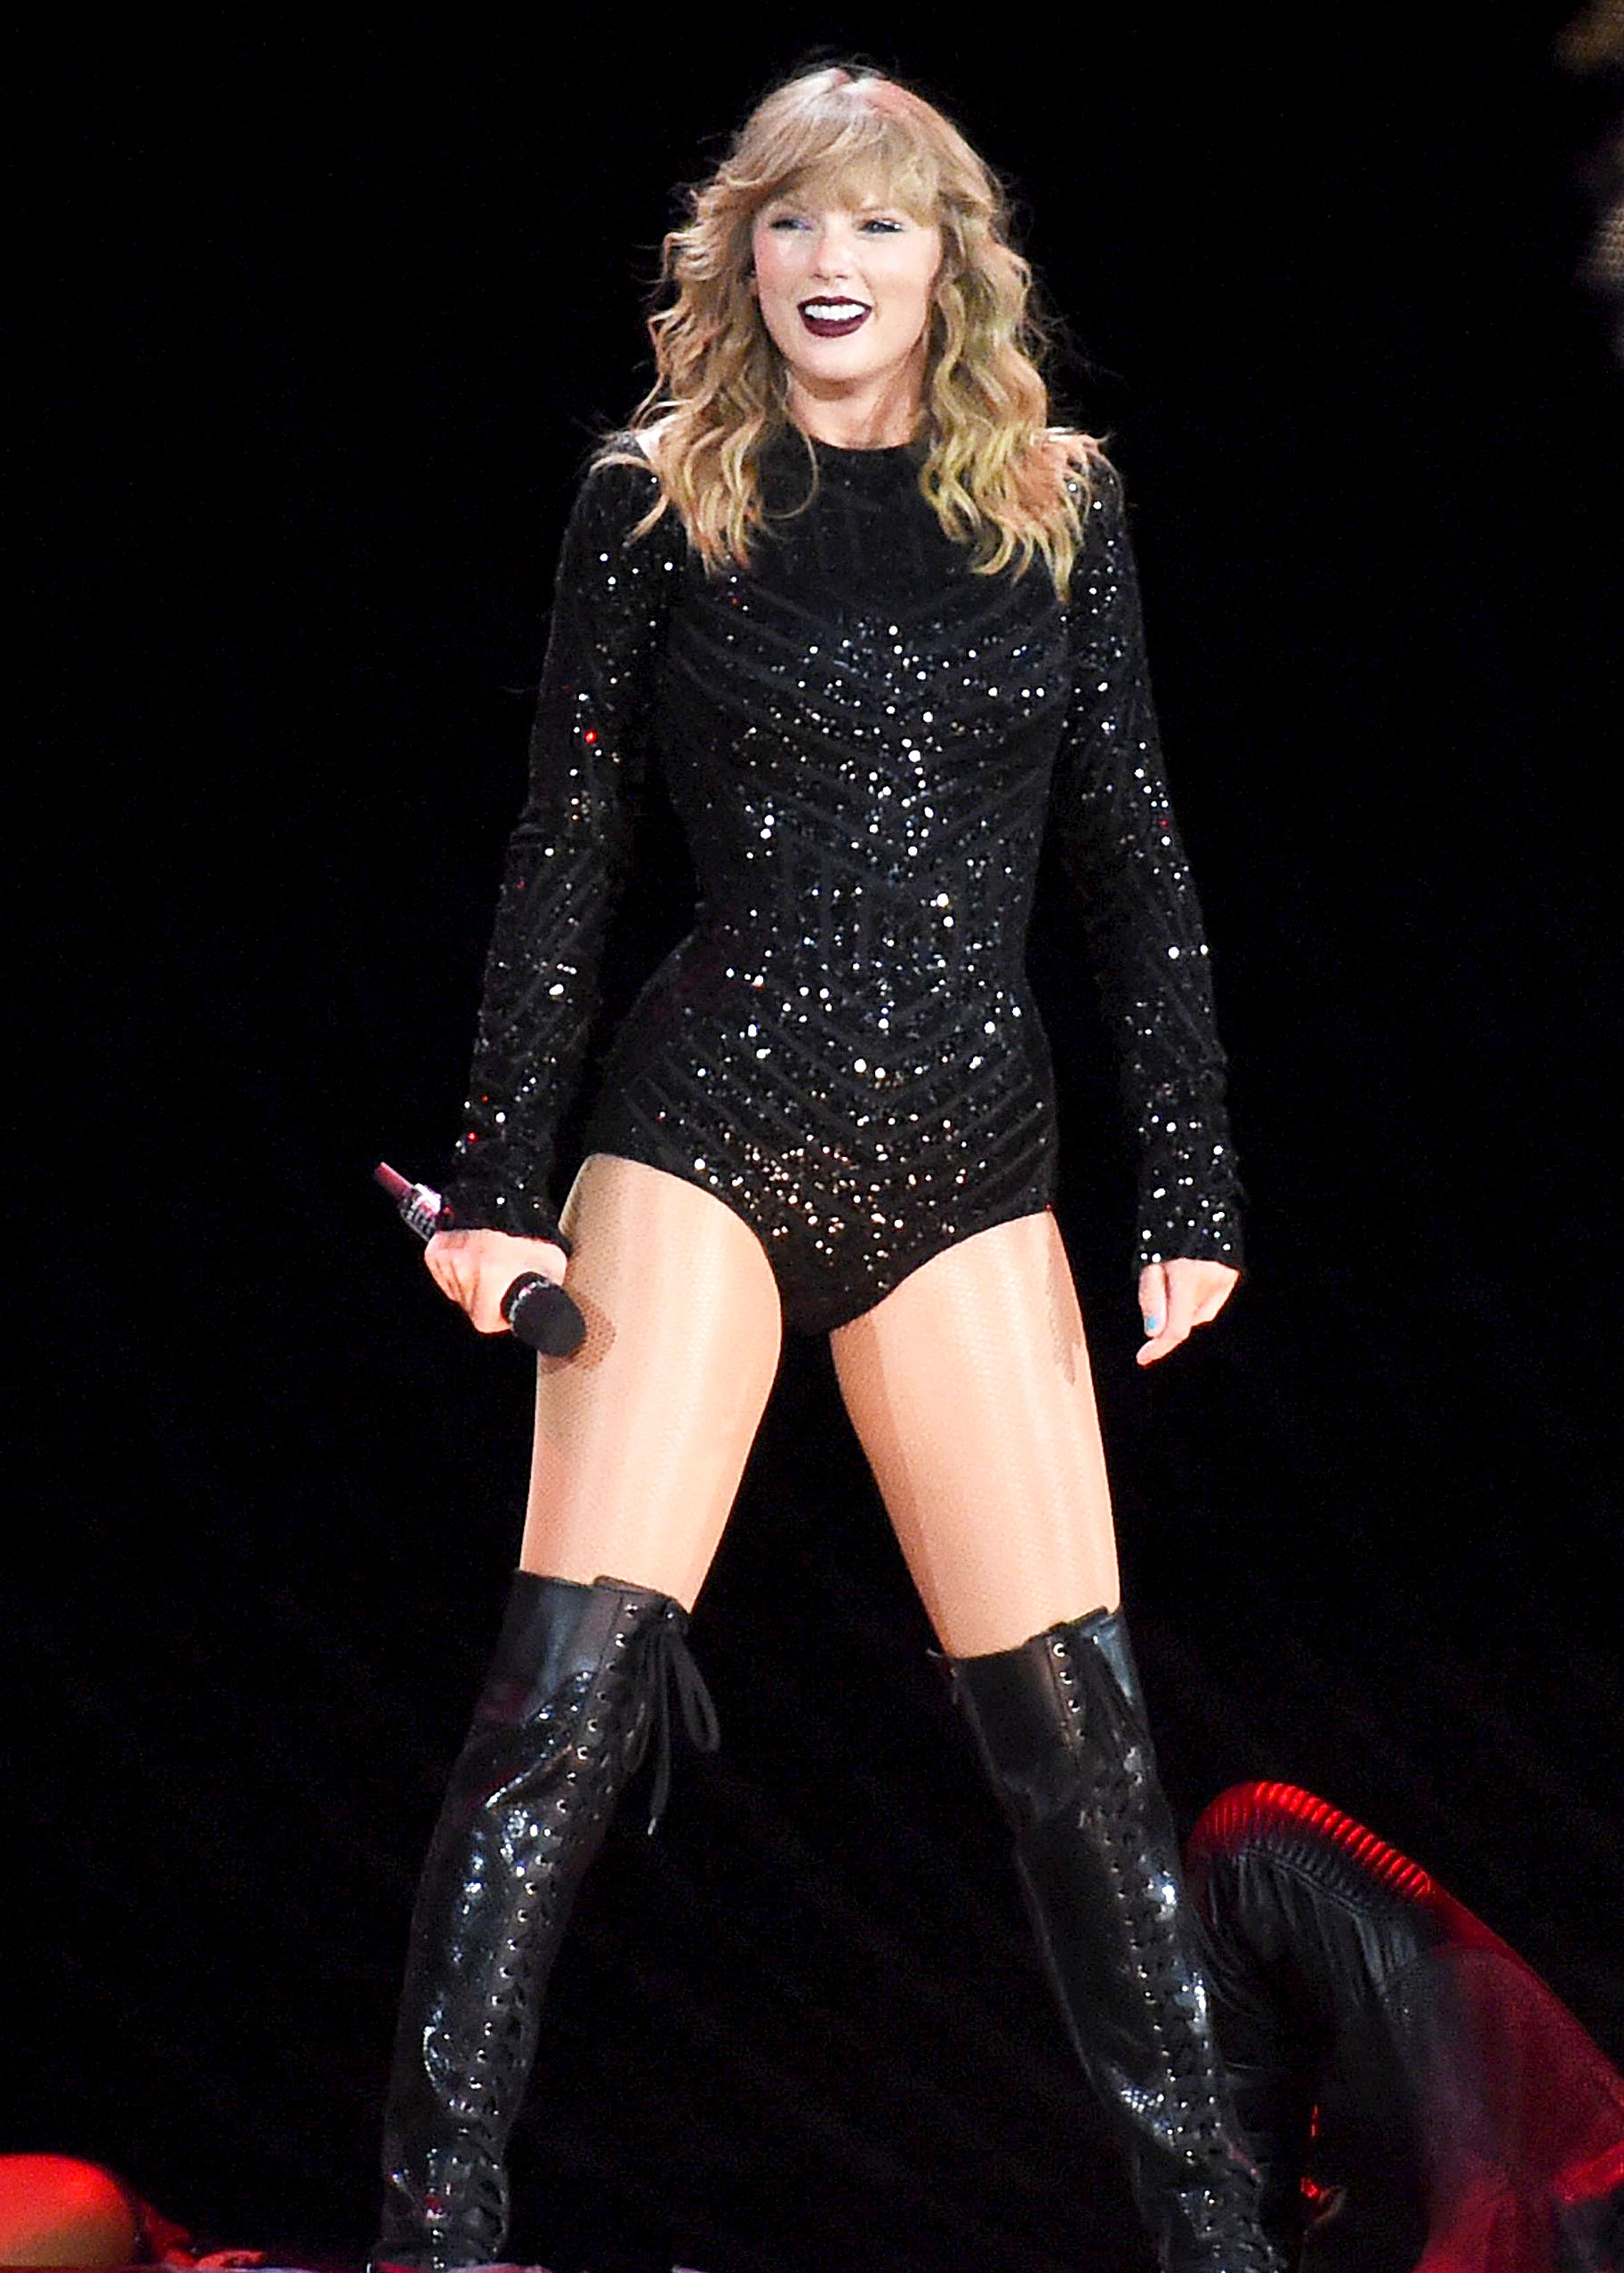 Taylor Swift's Fallout With Big Machine Records: Everything We Know